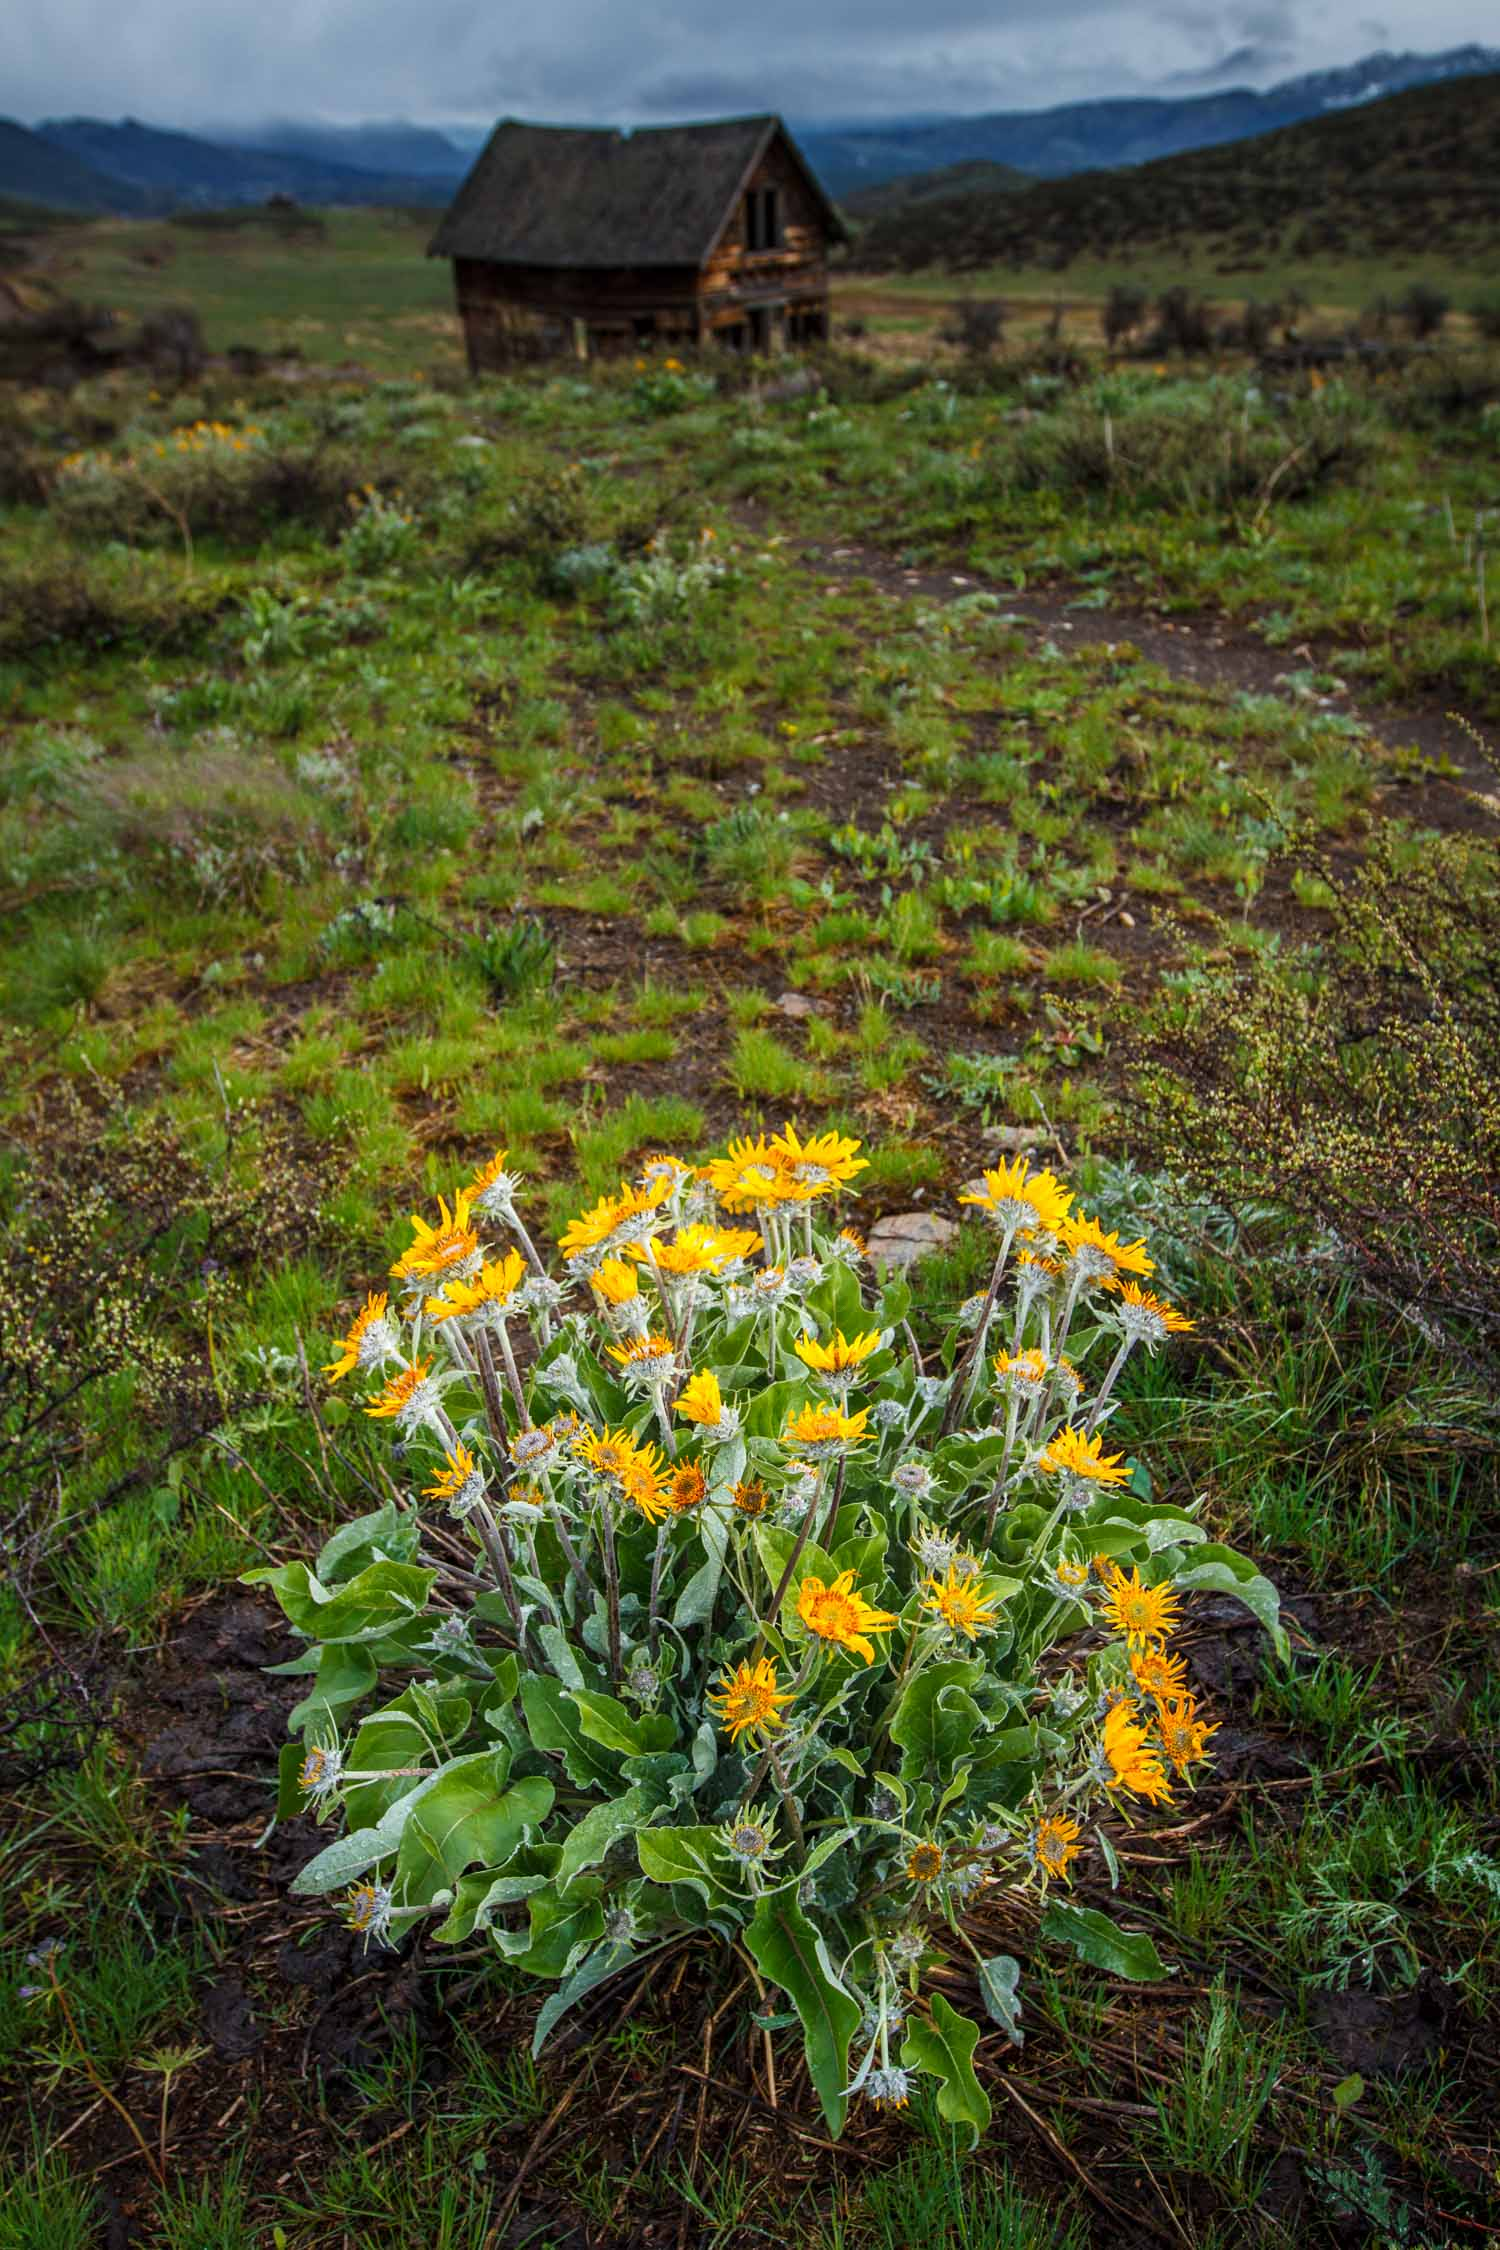 Methow-Valley-Learn-Photography.jpg